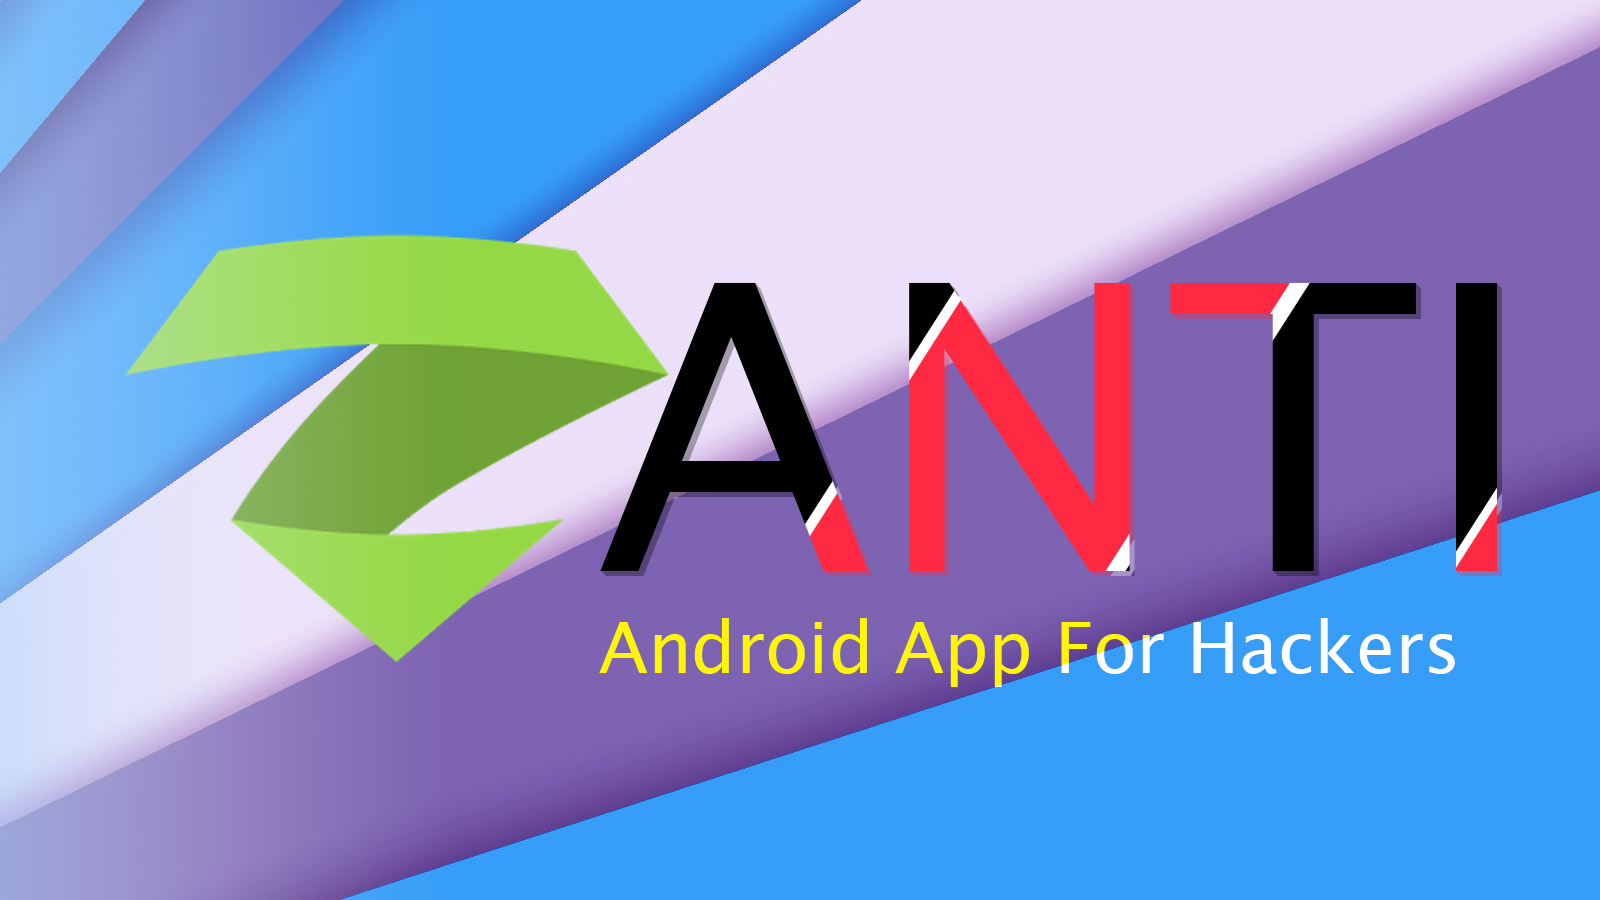 zANTI - Android App For Hackers - Effect Hacking